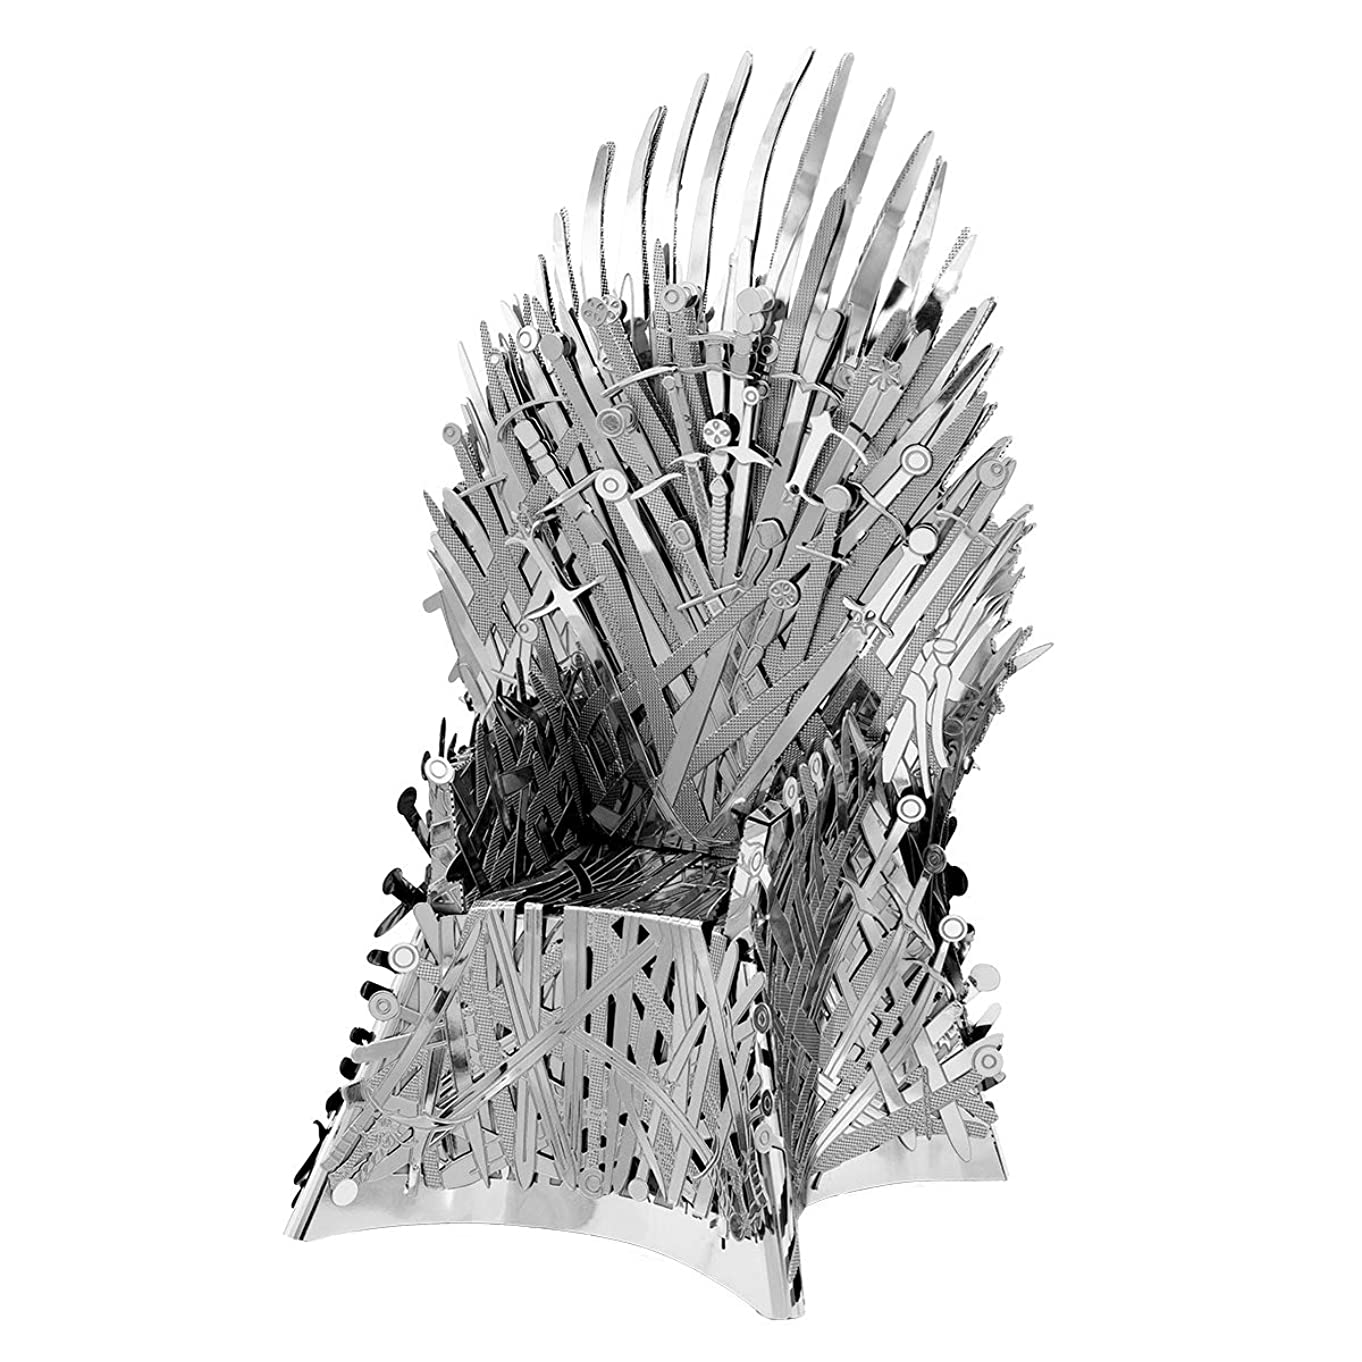 Fascinations Metal Earth ICONX Game of Thrones Iron Throne 3D Metal Model Kit